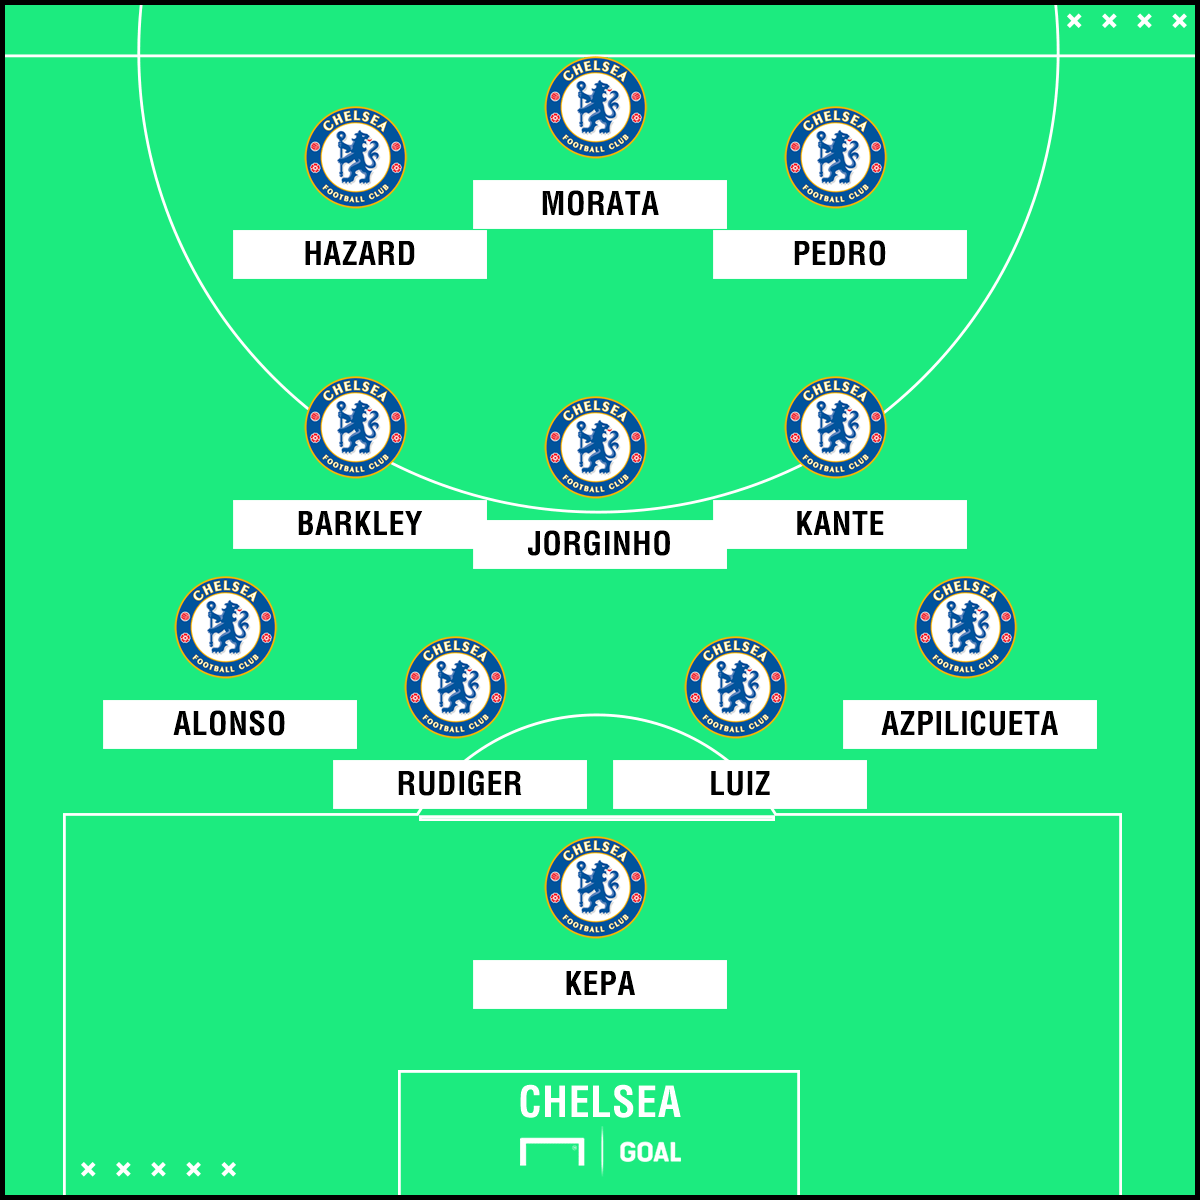 chelsea-possible-line-up-vs-huddersfield_1vpdacno1nmyl18y5tusbijgea.png [골닷컴] 첼시 허더즈필드전 프리뷰